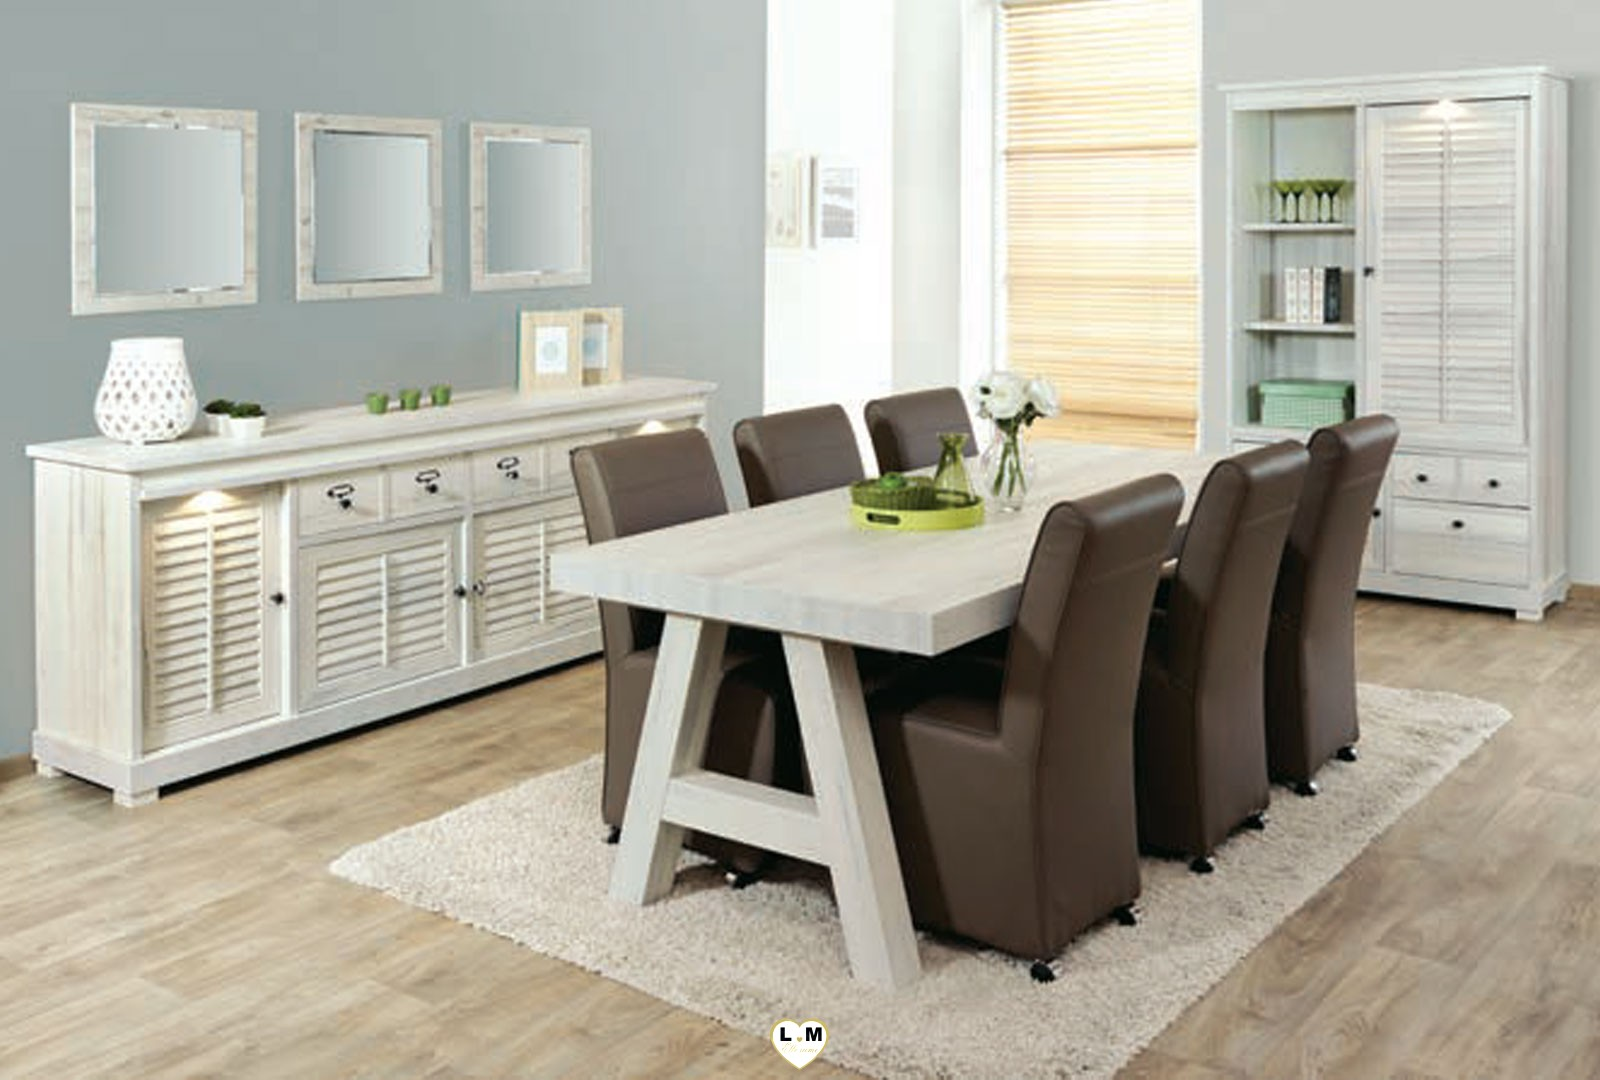 merida bois blanc vieilli ensemble sejour salle a manger. Black Bedroom Furniture Sets. Home Design Ideas